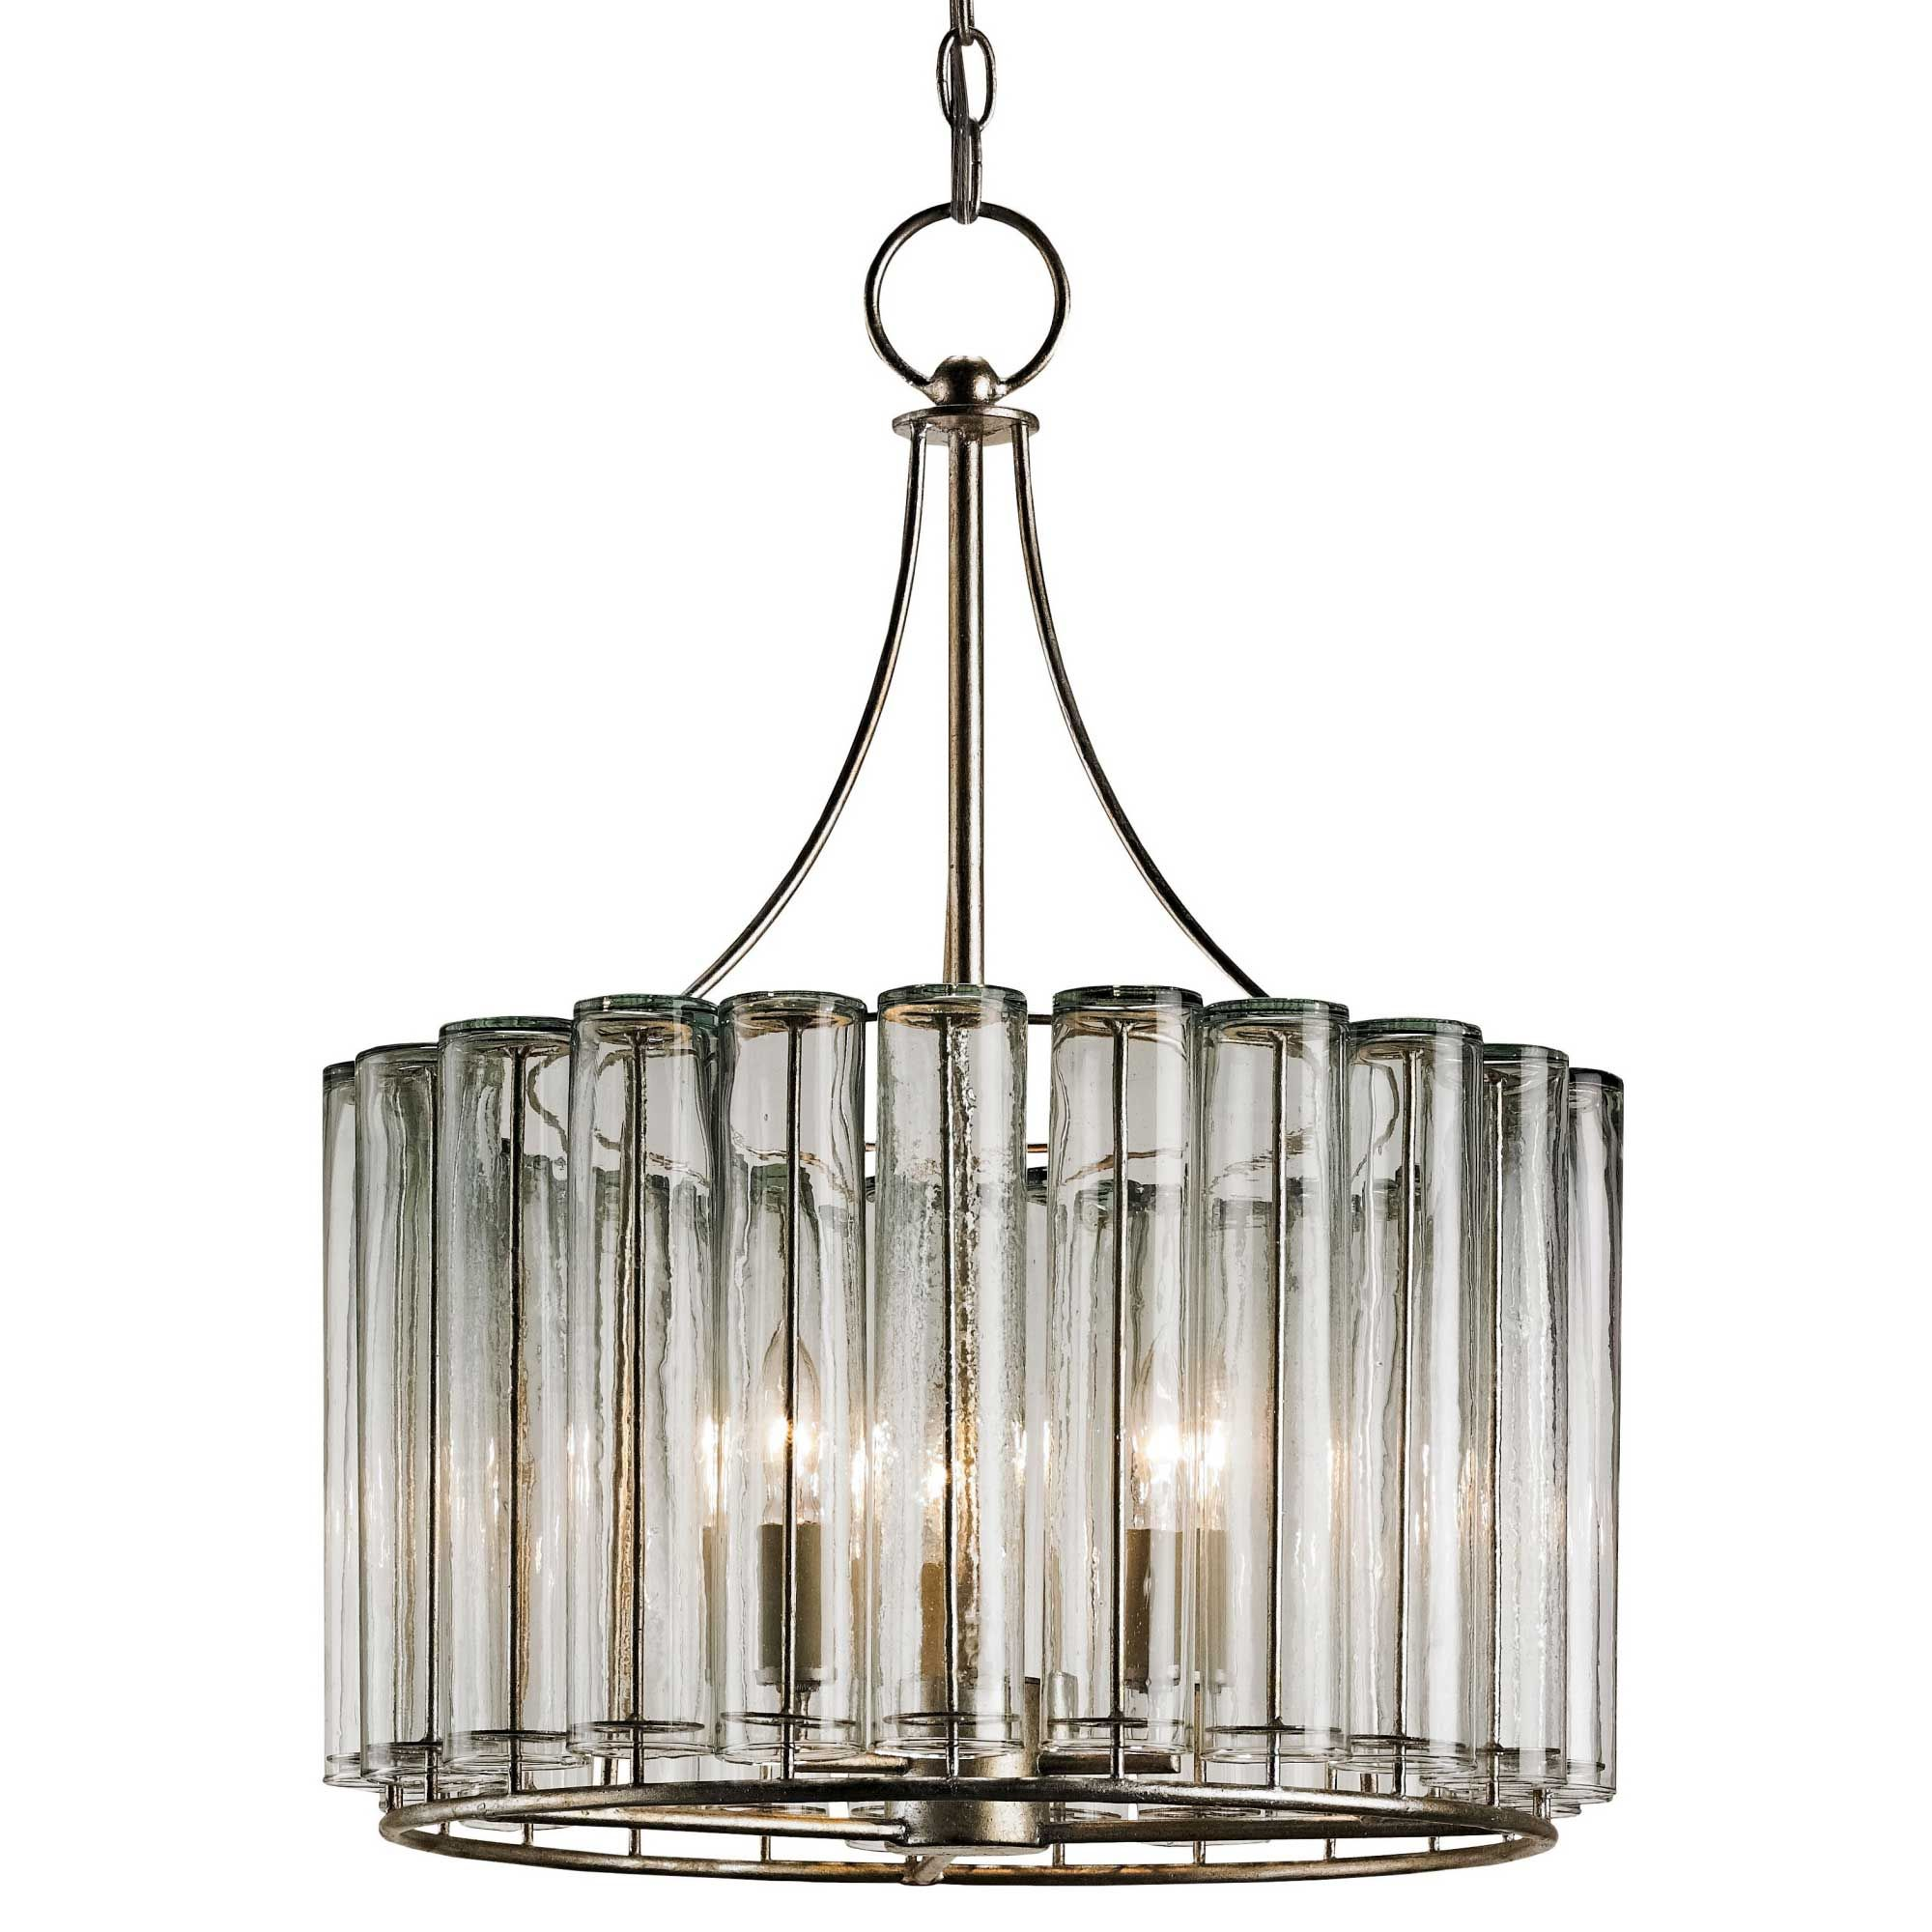 Bevilacqua Small Chandelier By Currey And Company 9293 Cc Small Chandelier Silver Chandelier Chandelier Design